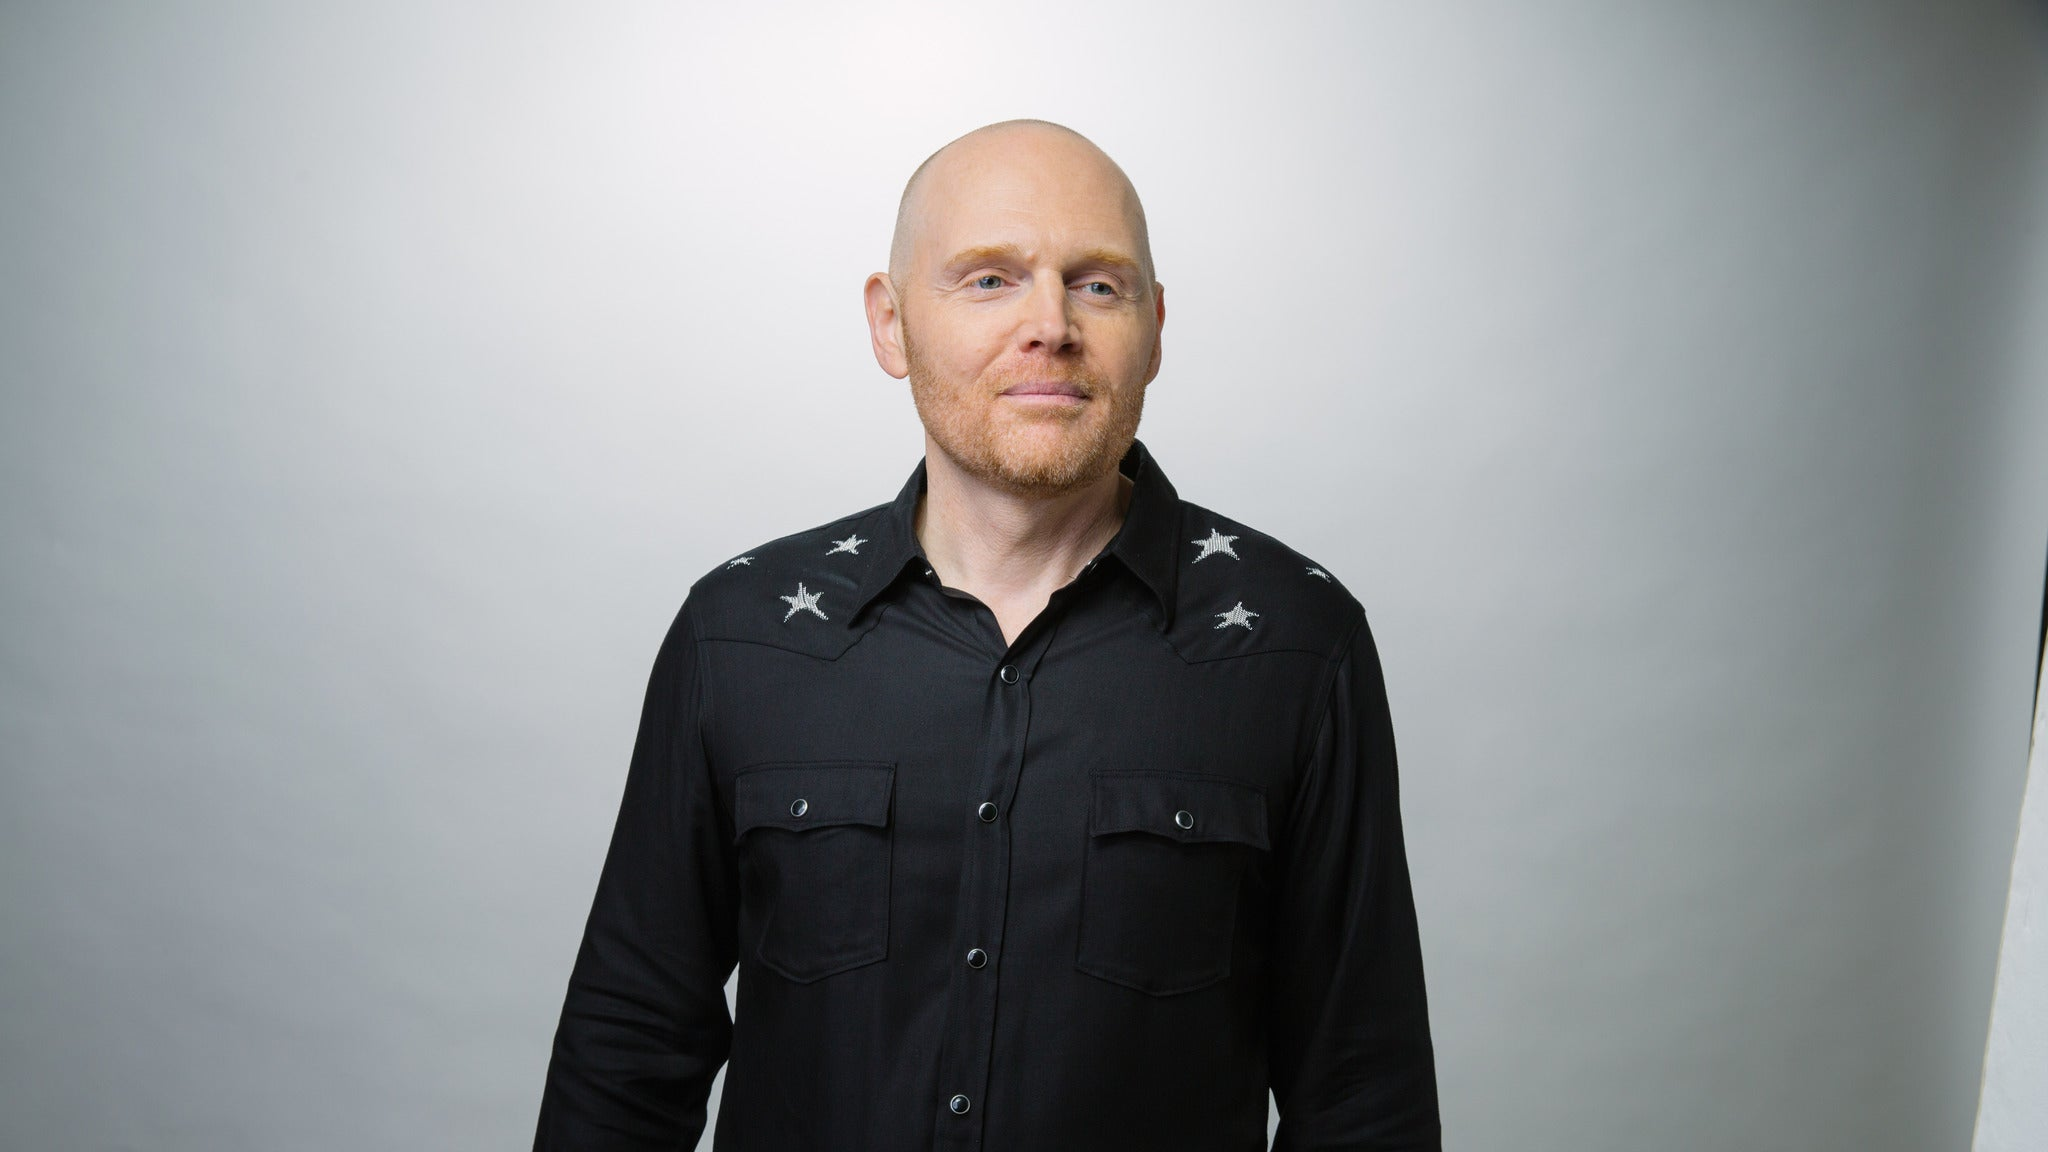 Bill Burr at The Forum